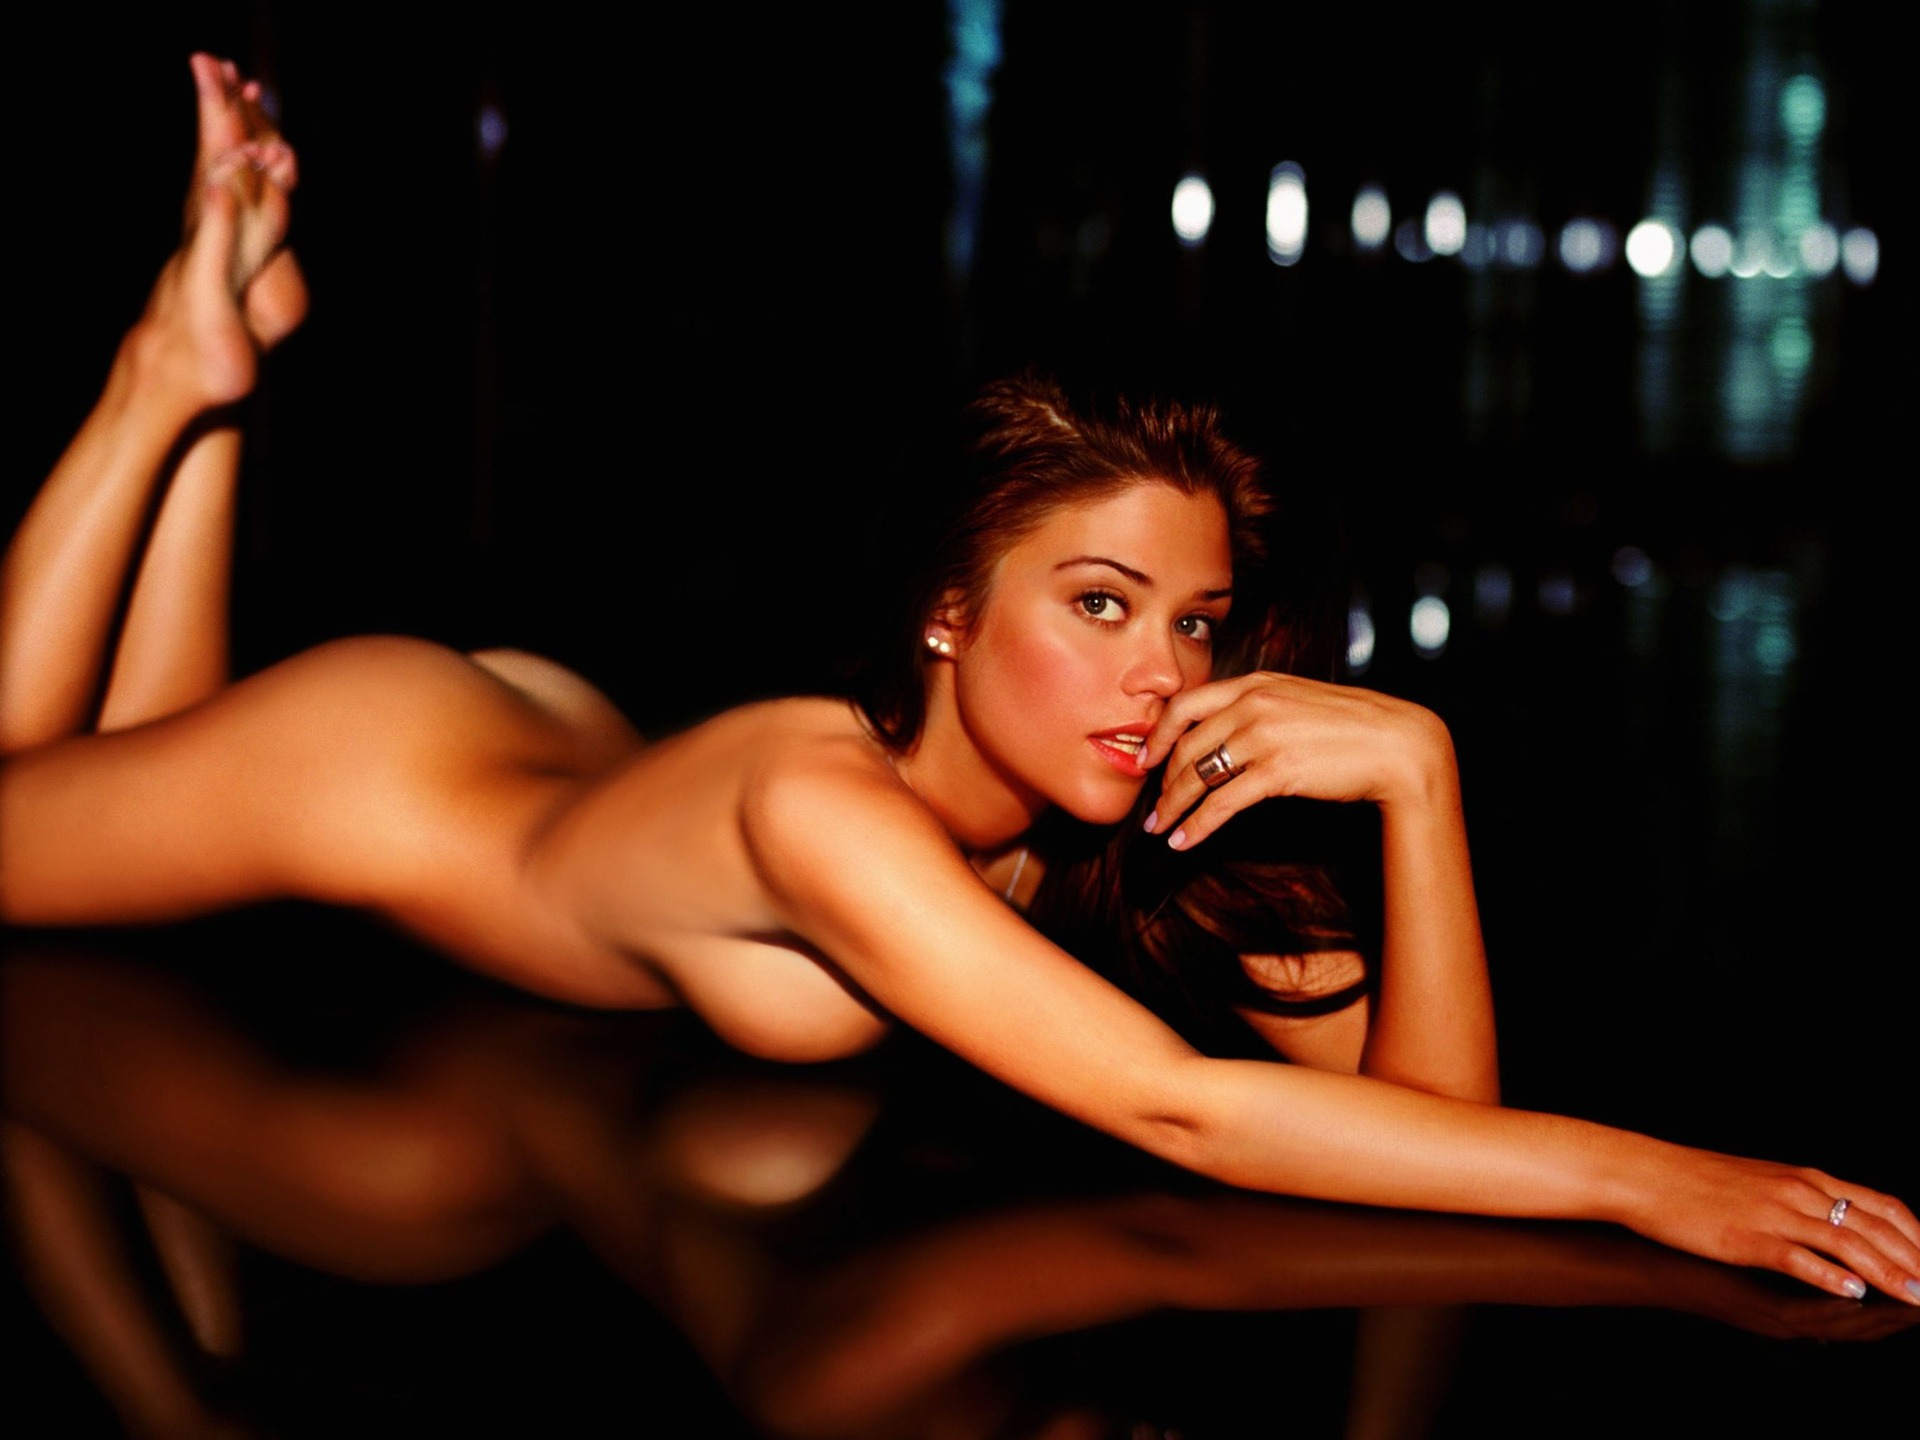 Remarkable nude susan ward what phrase..., remarkable